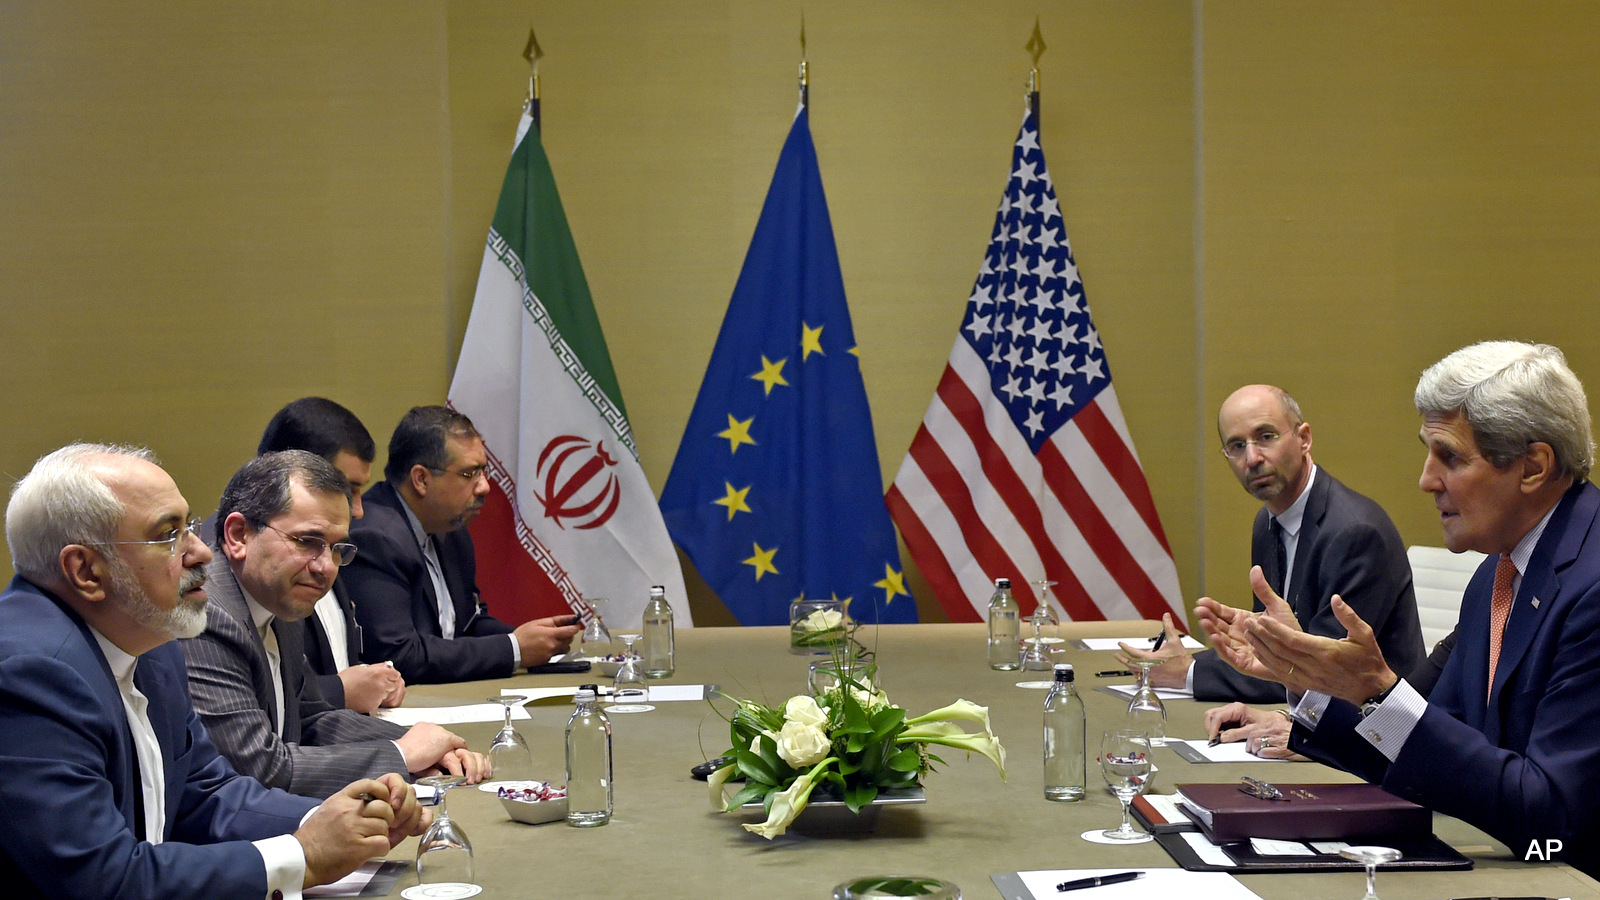 U.S. Secretary of State John Kerry, right, during official talks with Iranian Foreign Minister Mohammad Javad Zarif, left, in Geneva, Switzerland, Saturday, May 30, 2015.  Top U.S. and Iranian diplomats are gathering in Geneva this weekend, hoping to bridge differences over a nuclear inspection accord and economic sanctions on Tehran. (AP Photo/Susan Walsh, Pool)